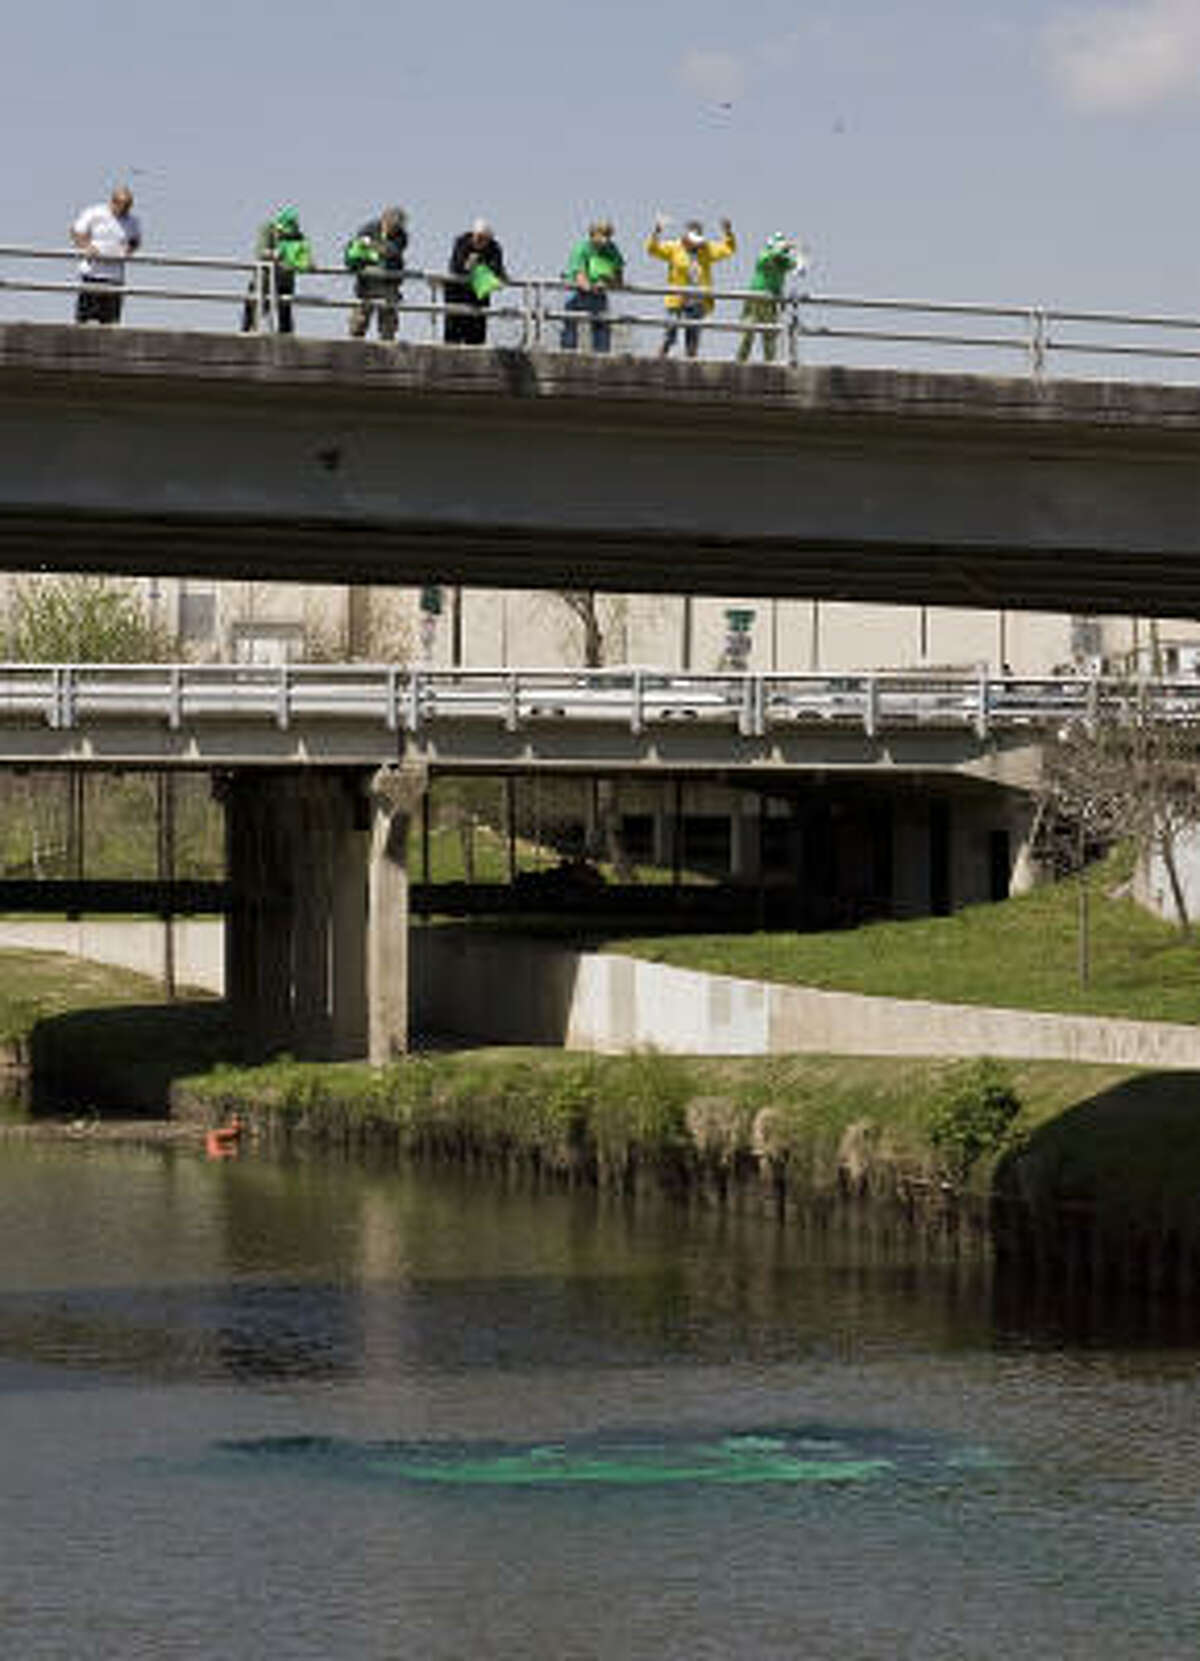 Members of the Slippery Rock Booster Club pour dye off a bridge during the dying of the bayou event commemorating St. Patrick's Day.